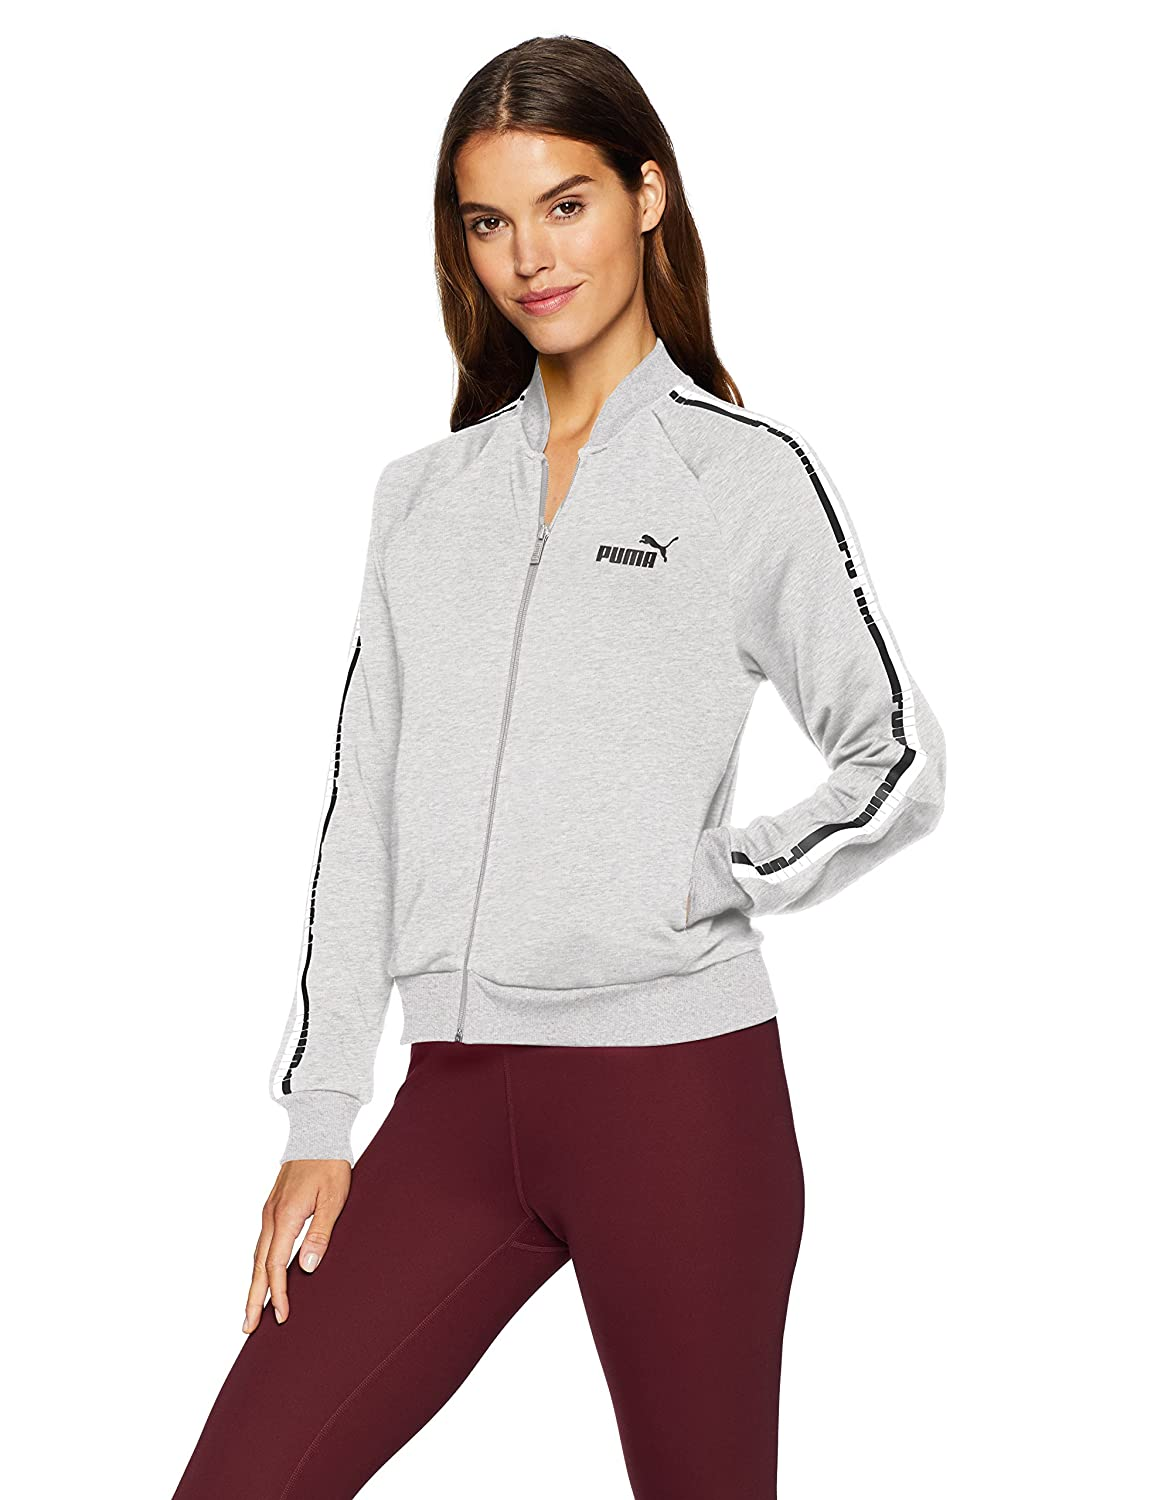 PUMA Womens Standard Tape FZ Jacket TR